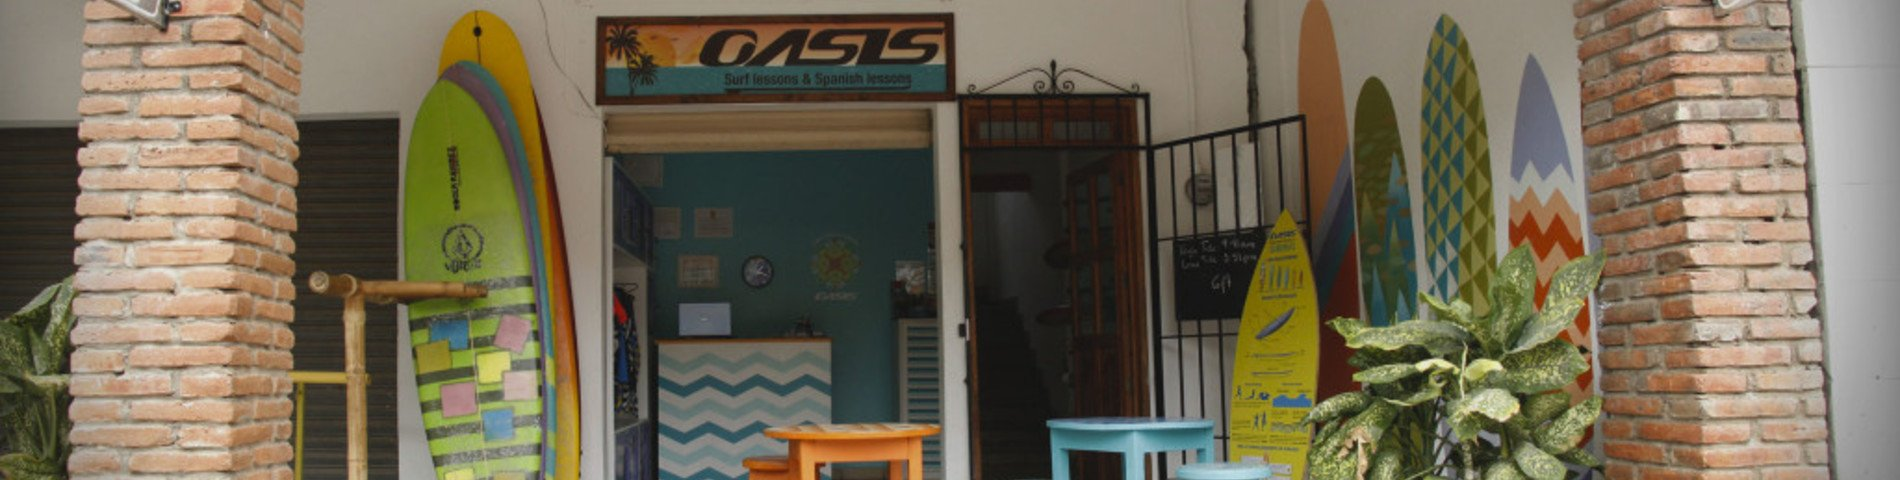 Oasis Language School resim 1